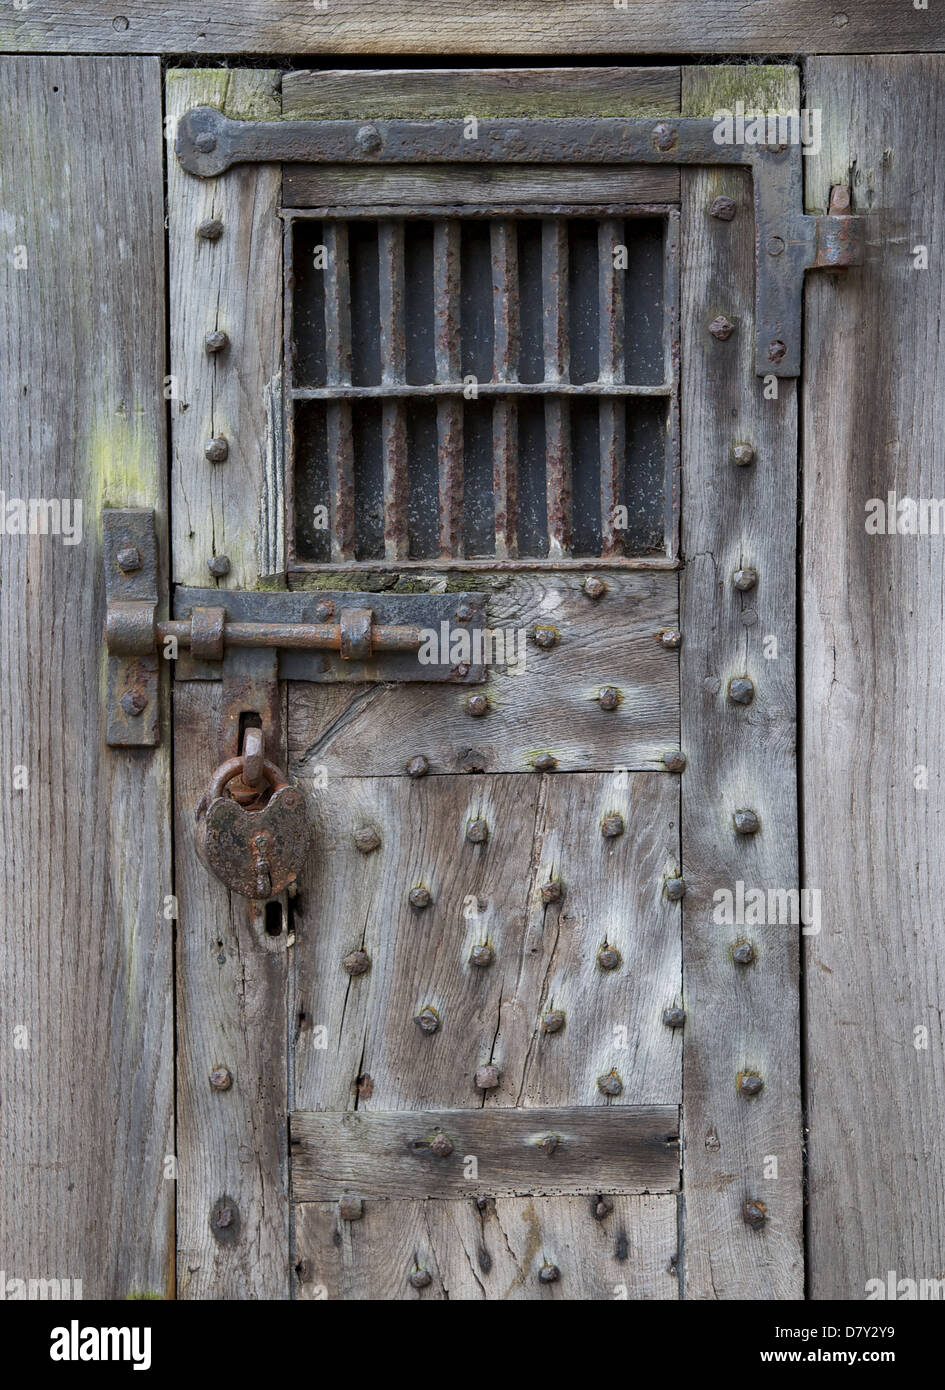 Old prison cell door in Warwick & Old prison cell door in Warwick Stock Photo Royalty Free Image ... pezcame.com